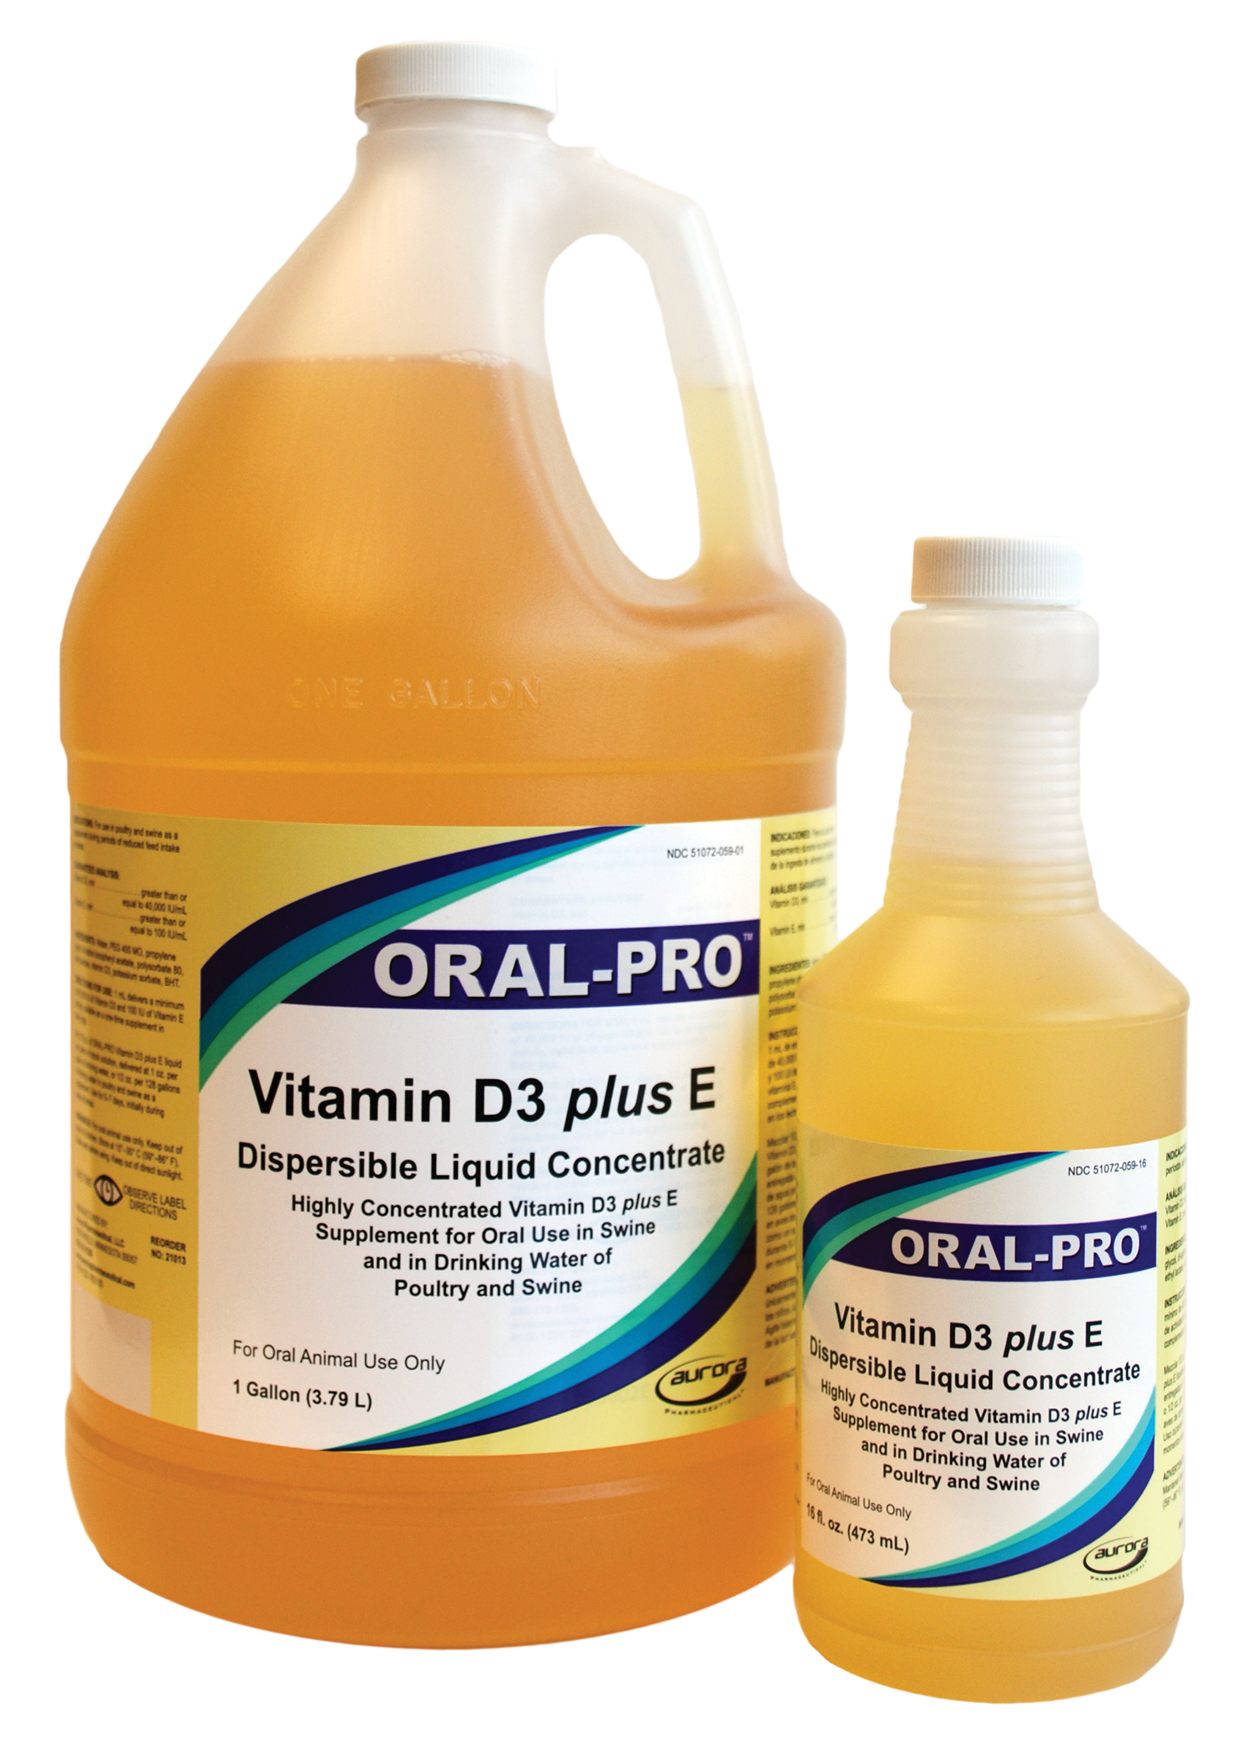 ORAL-PRO Vitamin D3 Plus E